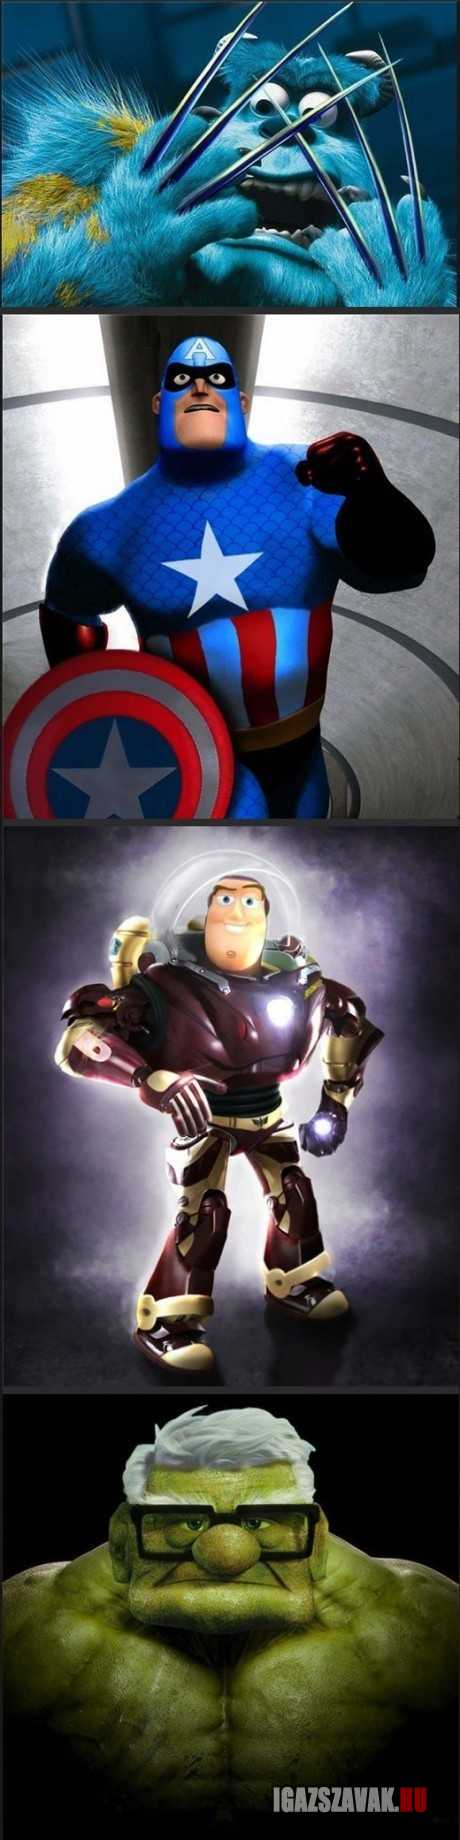 pixar vs marvel